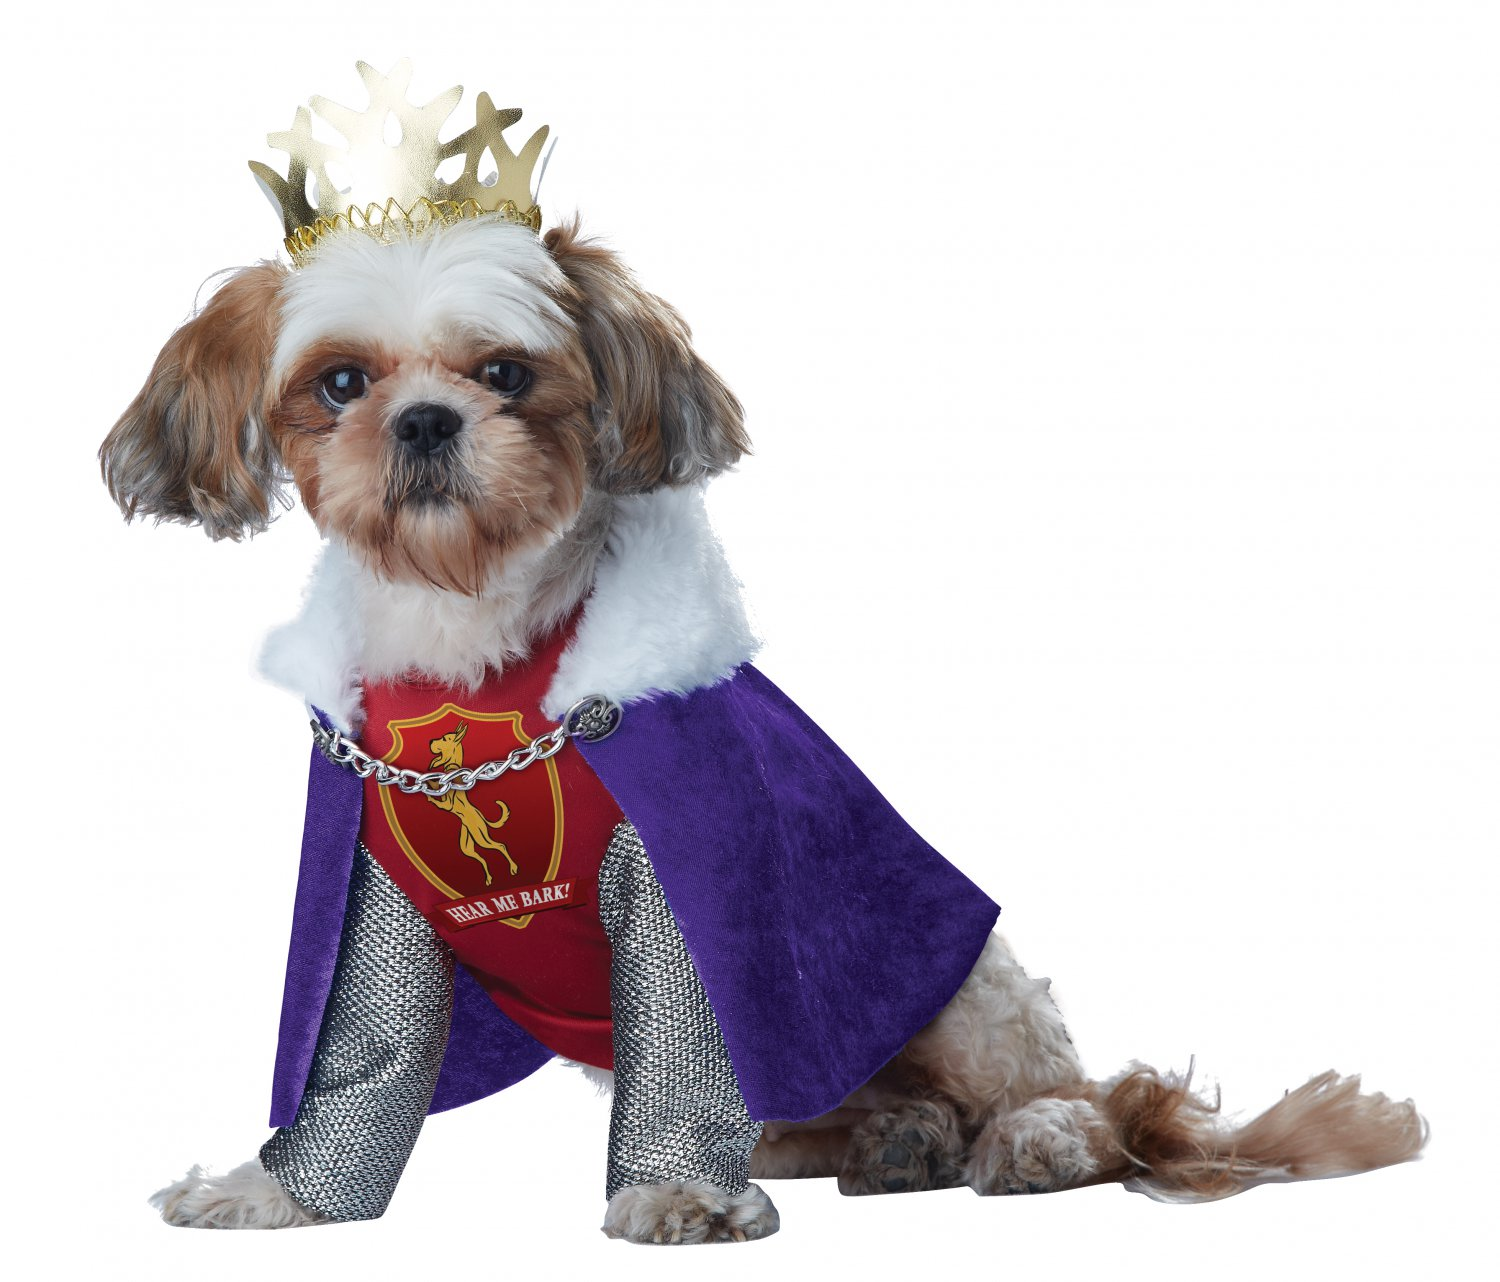 Renaissance King of Bones Pet Dog Costume Size: Small #20138